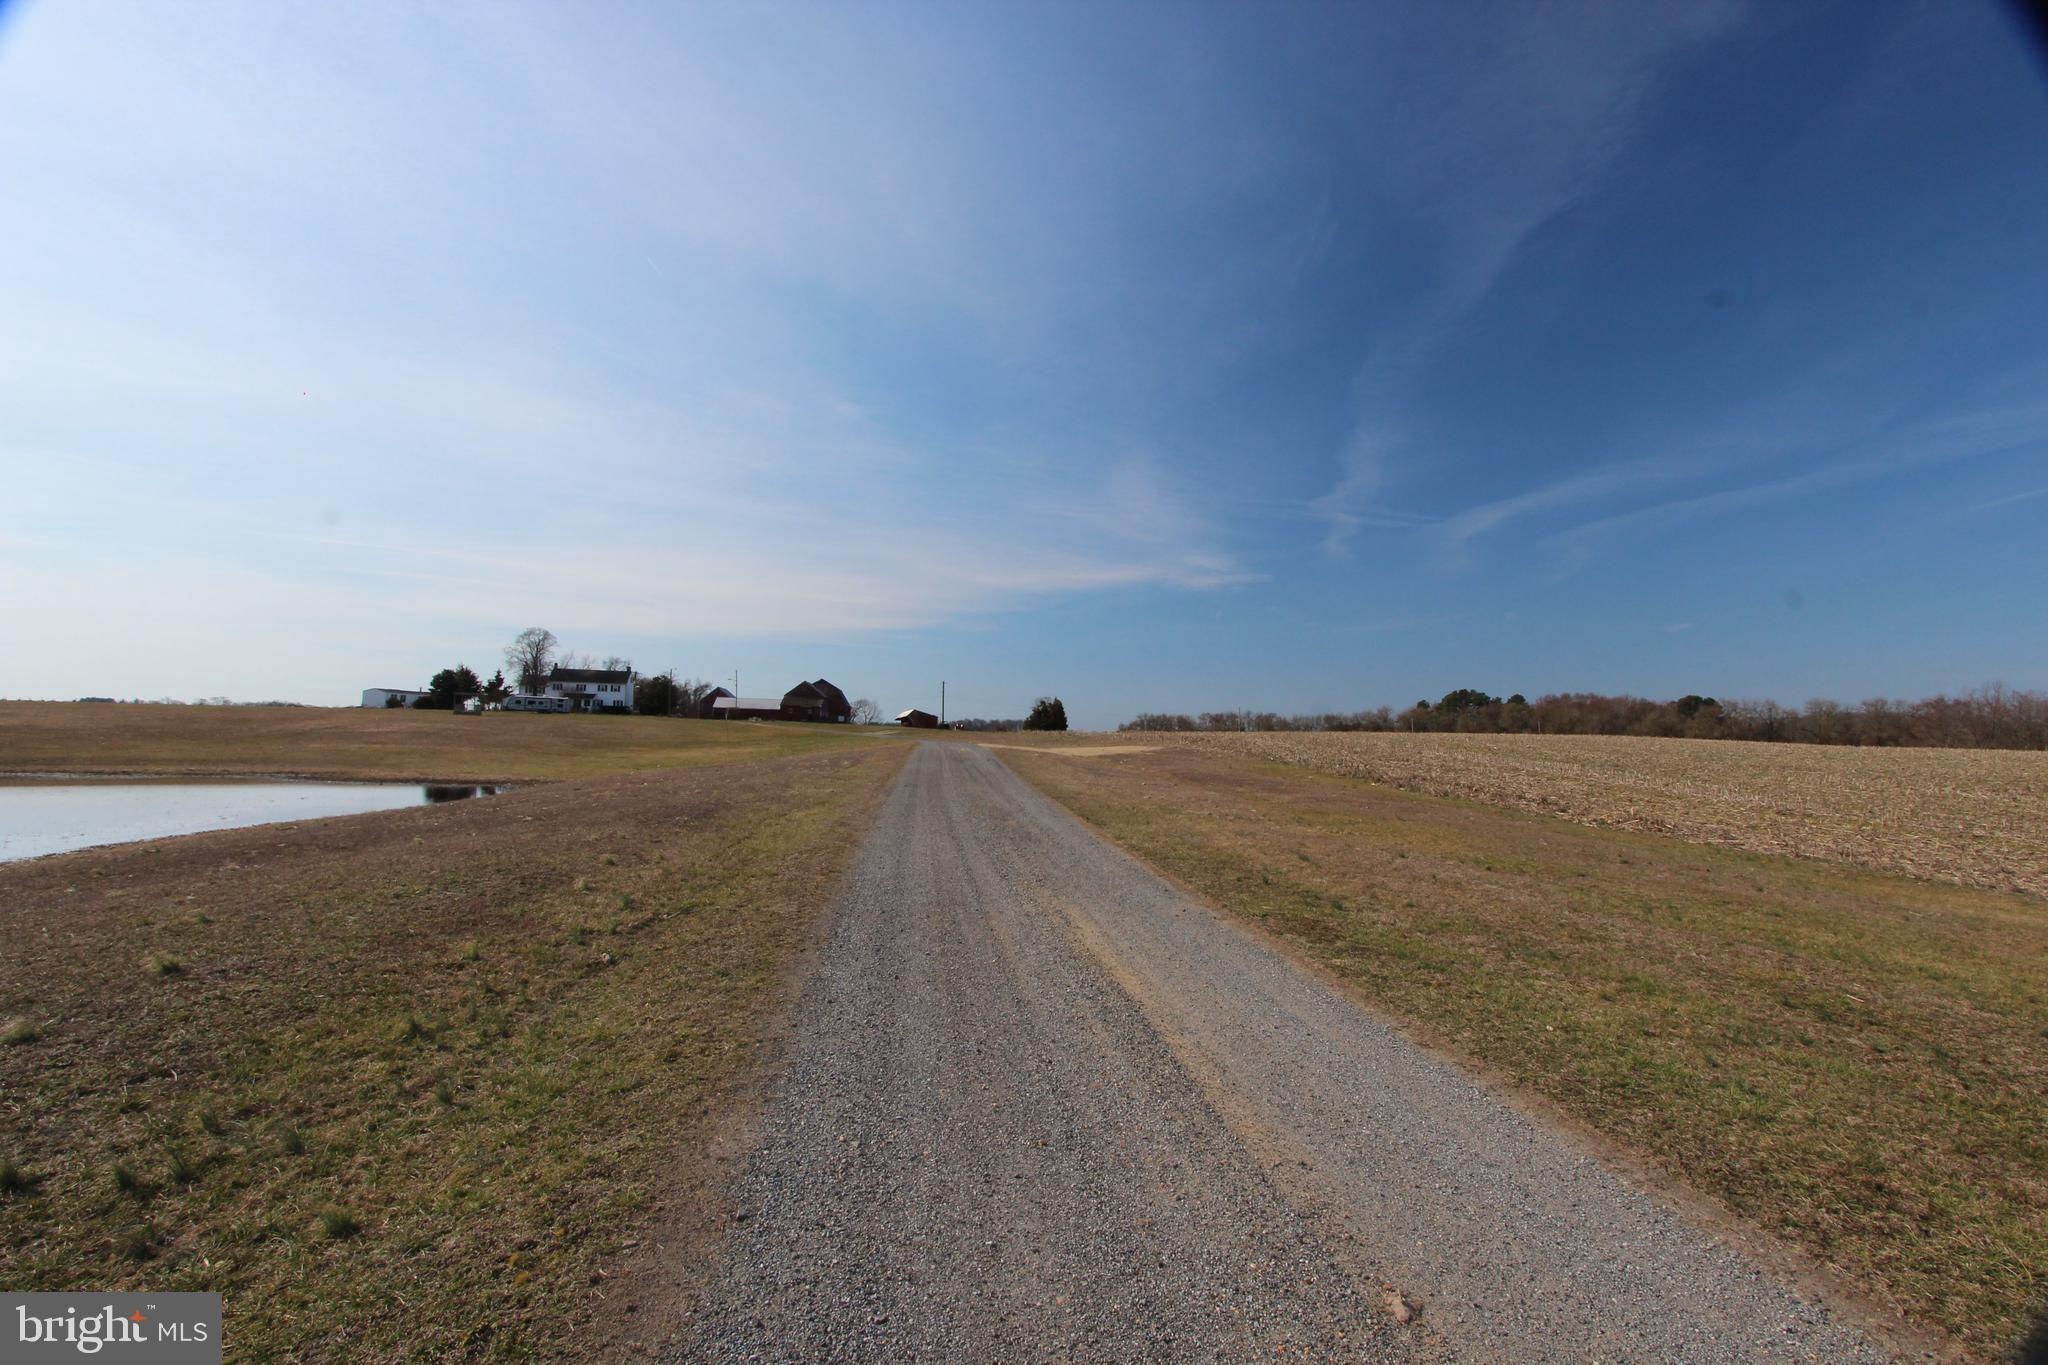 Property, Zoned Suburban, 234.2 Acres with lots of Possibilities.  Backs to Augustine Creek and State Wildlife Management Area.   Includes 3 Tax Parcels know as 950 Port Penn for a total of 234.2 Acres all to be sold as together. Tax Parcel 13-014.00-038 :  223.2 Acres  (120 Ac being farmed, 30 Ac Clear Land (house, etc),  40+ Ac of Woods, 30+ Ac of Wetlands) & 2300 sq ft 2 story Farmhouse, 2 barns, 3 car garage, and several out buildings. Tax Parcel 13-009.00-055  -  11 Acres (8 Acres being farmed, 2 Acres of Woods, 1 Acre of Wetlands).  Road Frontage estimated at 50 ft. Reference MLS #'s: DENC496416 & DENC496436. 13-014.00-038.M.A001  -2nd home- Mobile Home. More Information to Come! All Buildings offered As-Is.